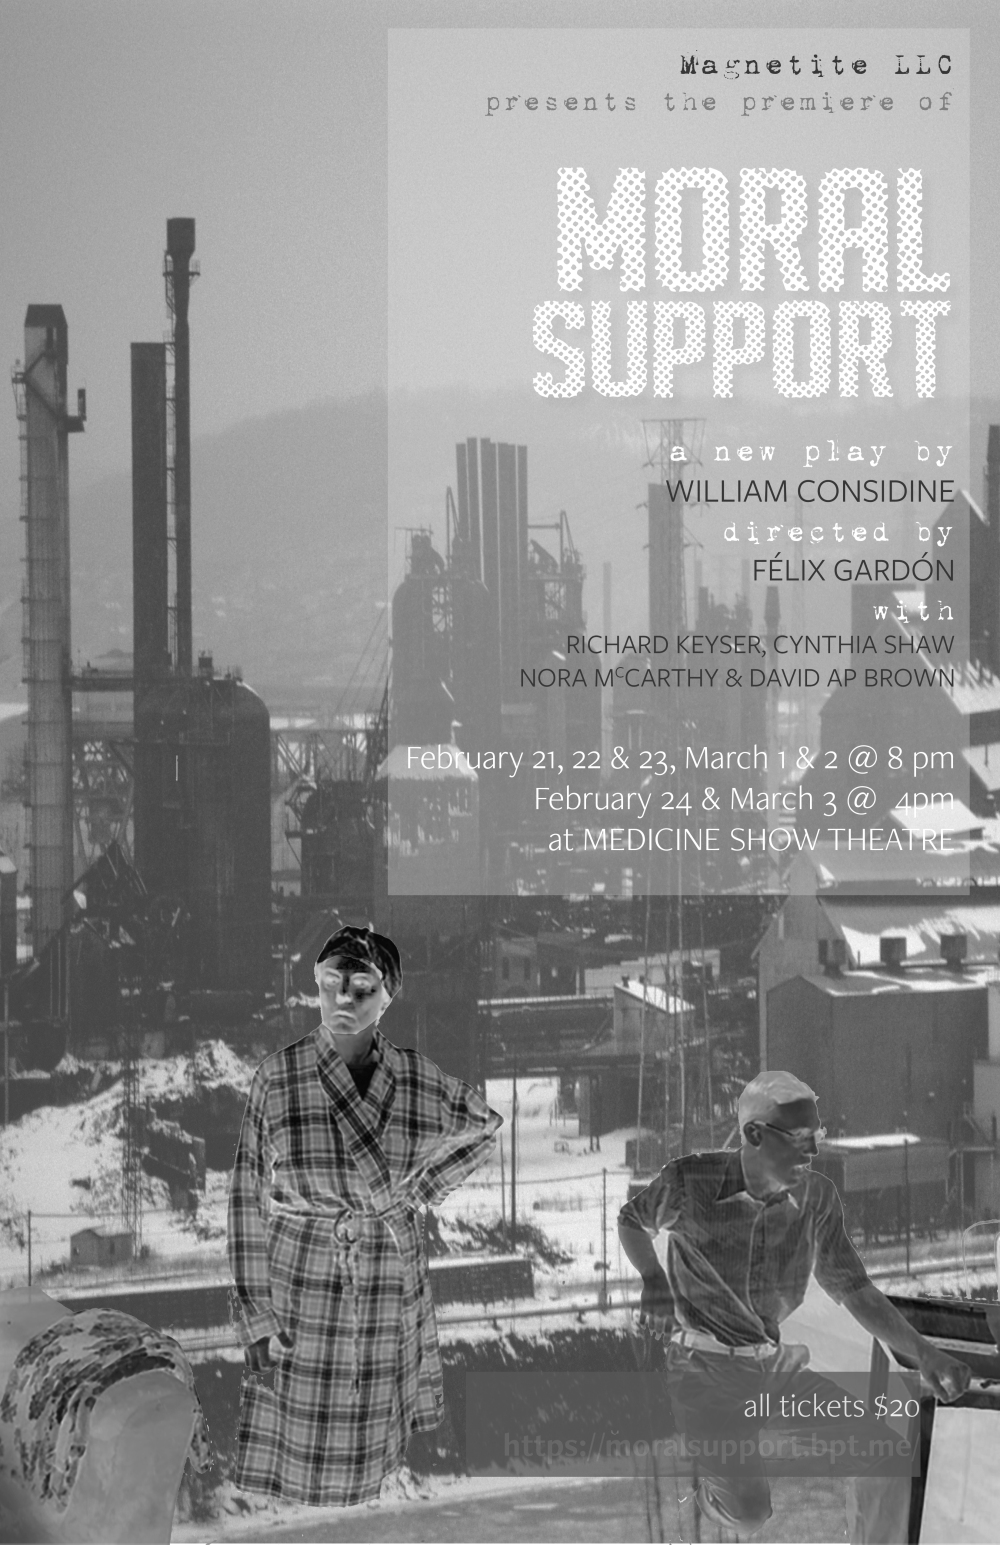 moral support poster_full text